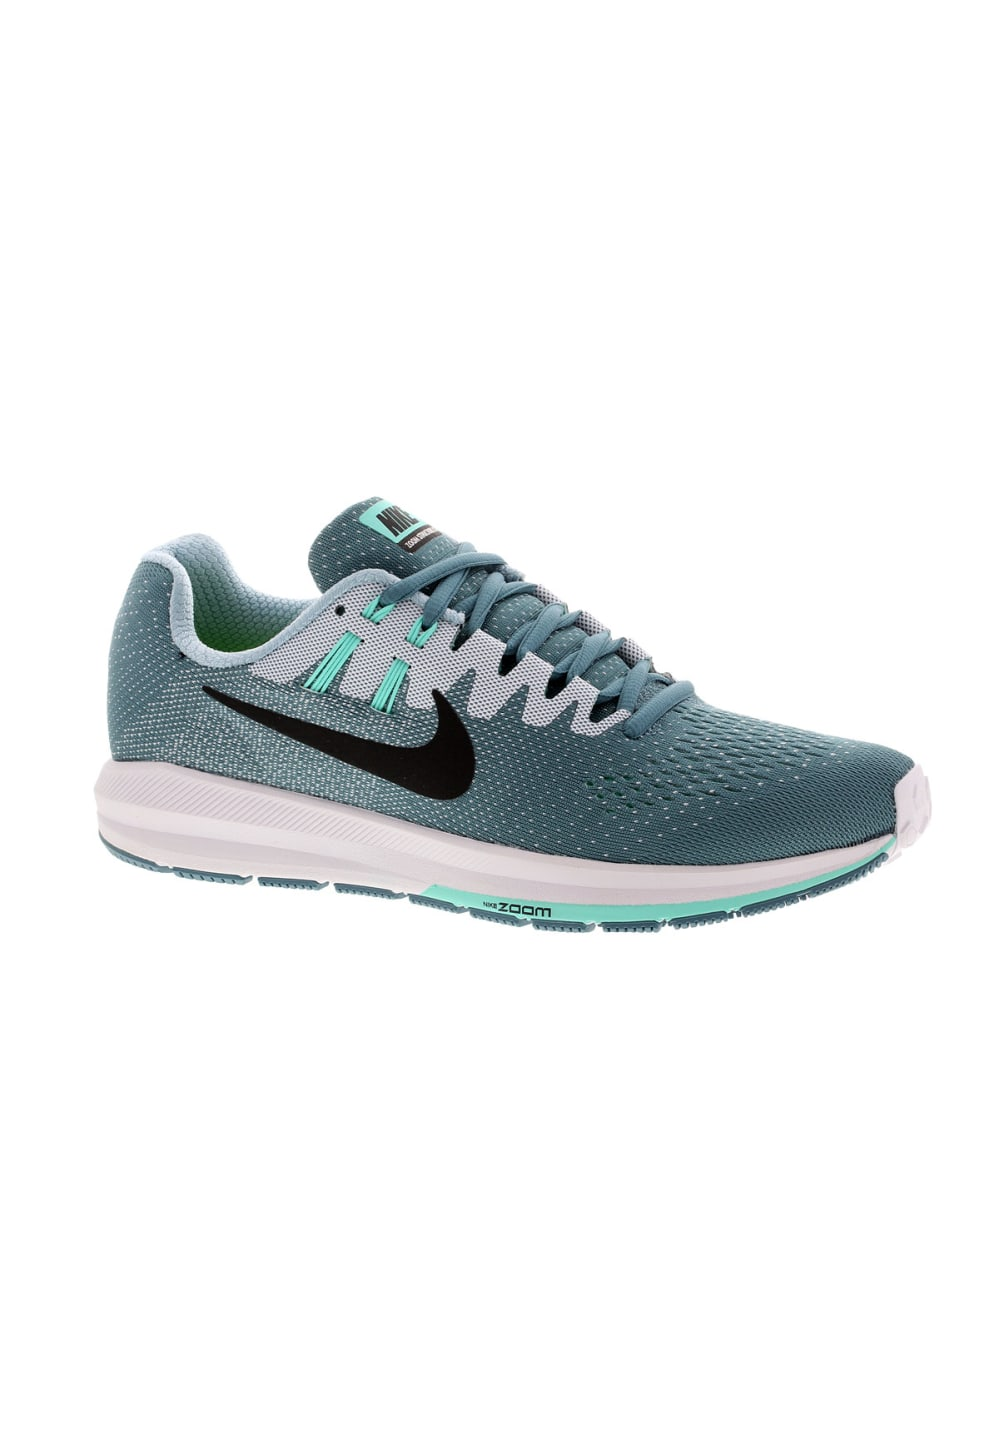 more photos 3e419 d099f Next. Nike. Air Zoom Structure 20 - Running shoes for Women